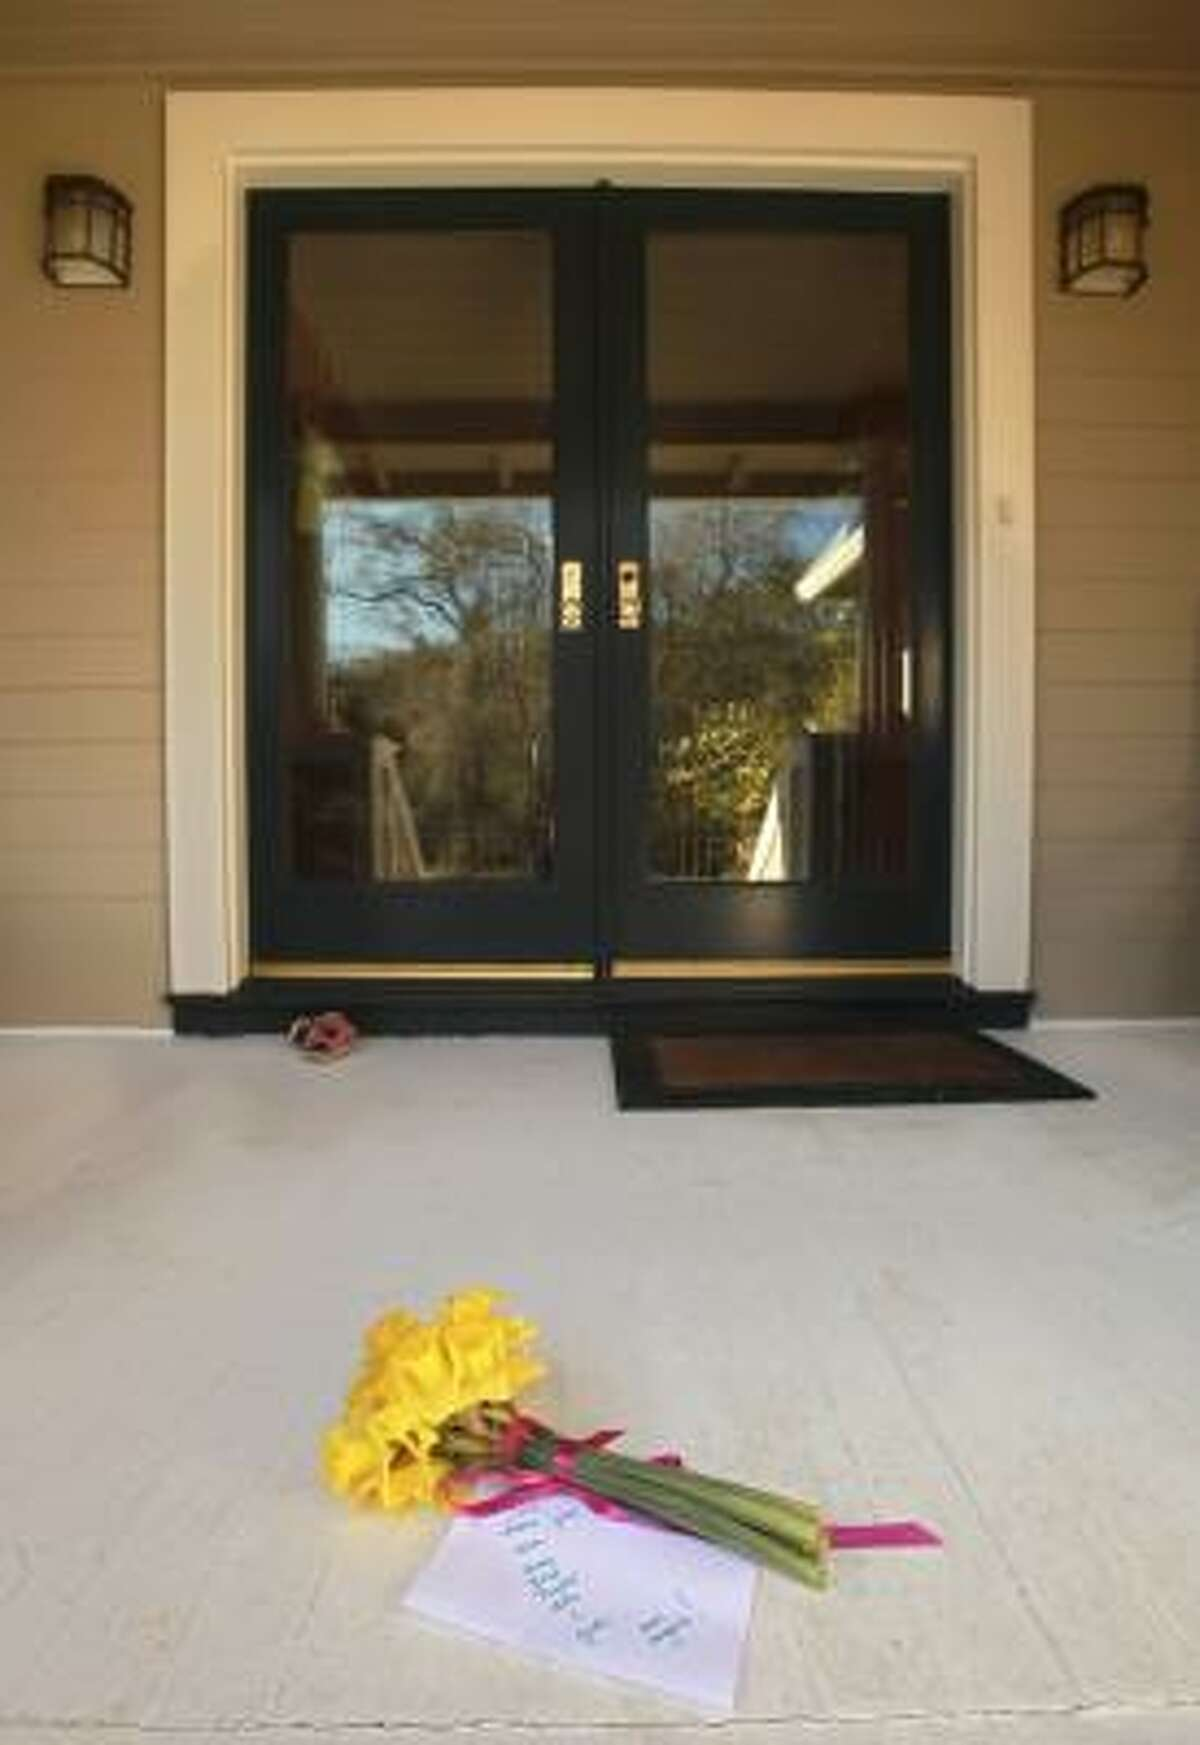 Flowers and a note sit at the Jacobson family's front porch in St. Helena, Calif., March 23. Amy Jacobson; her husband, Erin, and their children, Taylor, 4, Ava, 3, and Jude, 1, died in the crash.